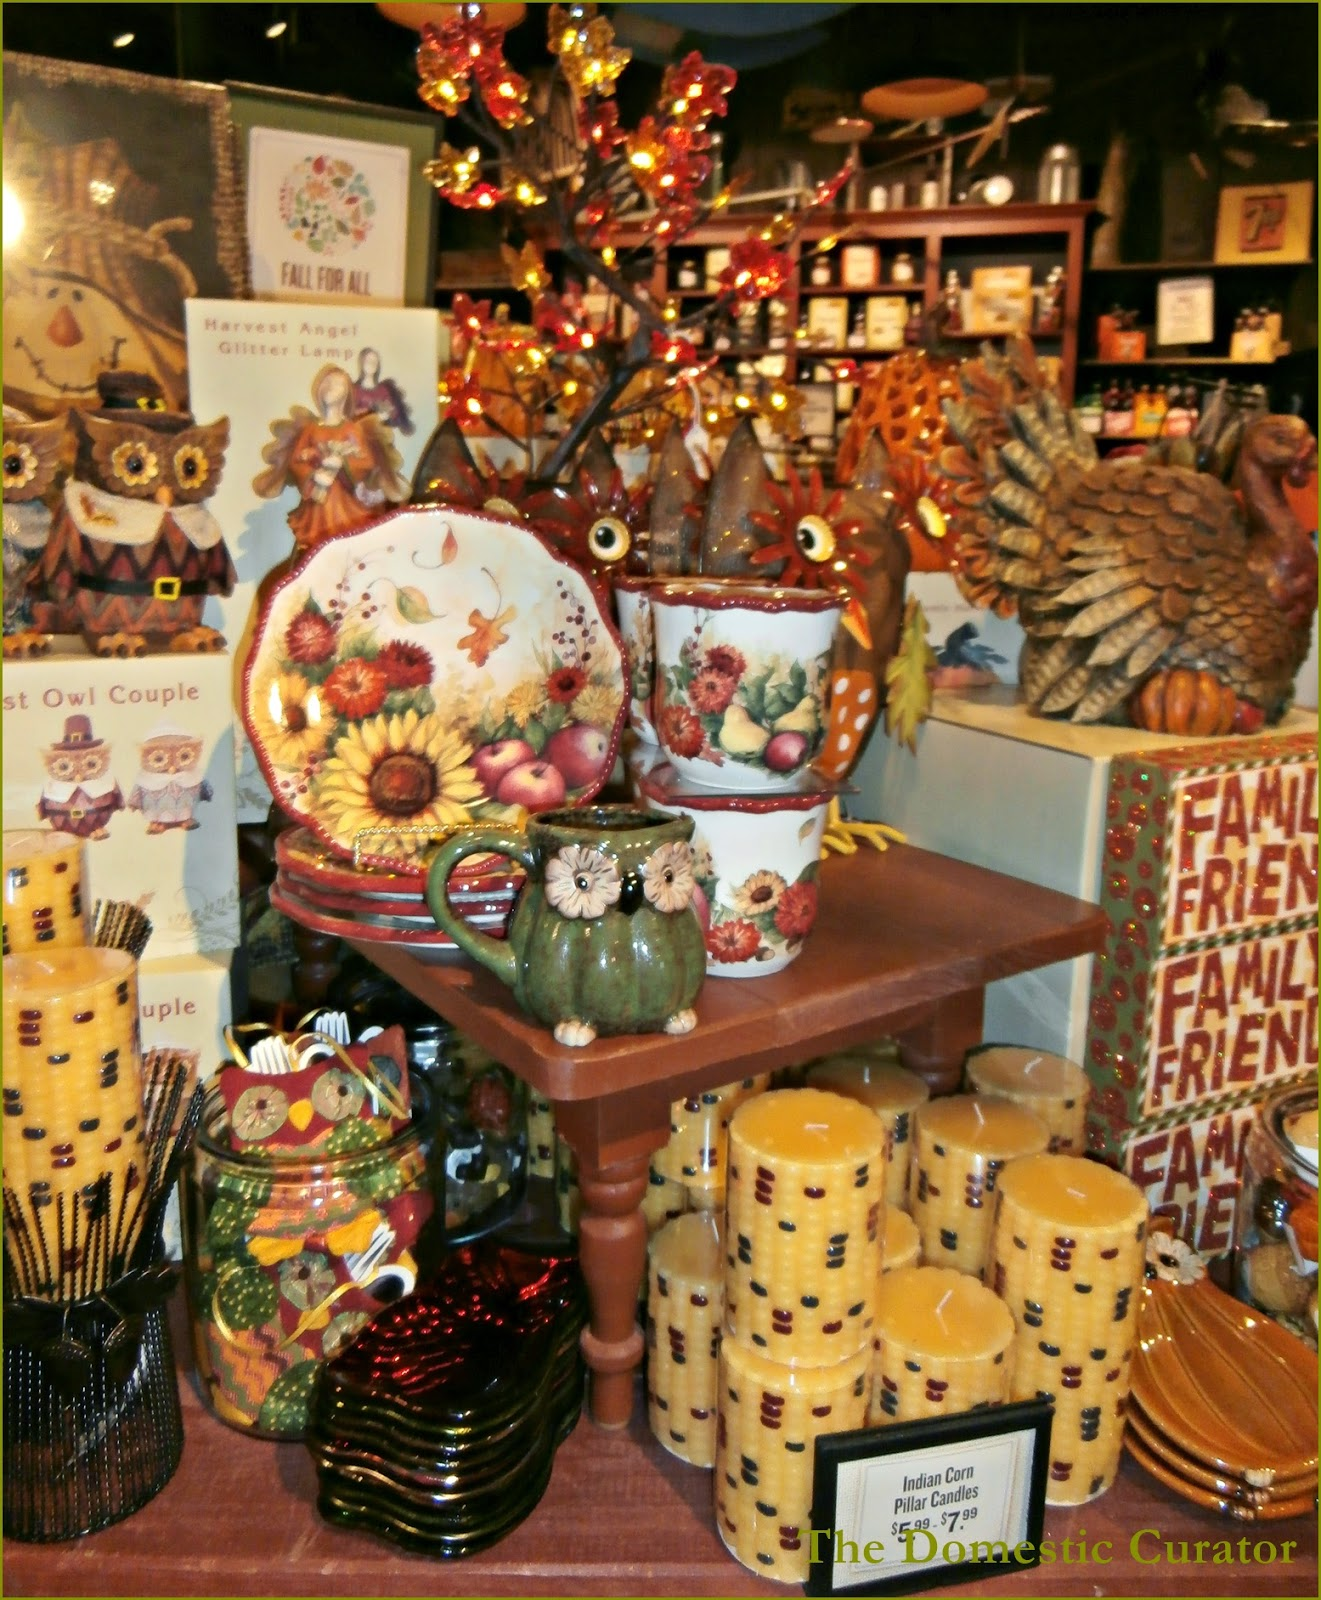 wwwcrackerbarrelcom even though they do not carry as large a selection online as in the store i hope you find this helpful and enjoy a bit of fall - Cracker Barrel Store Christmas Decorations